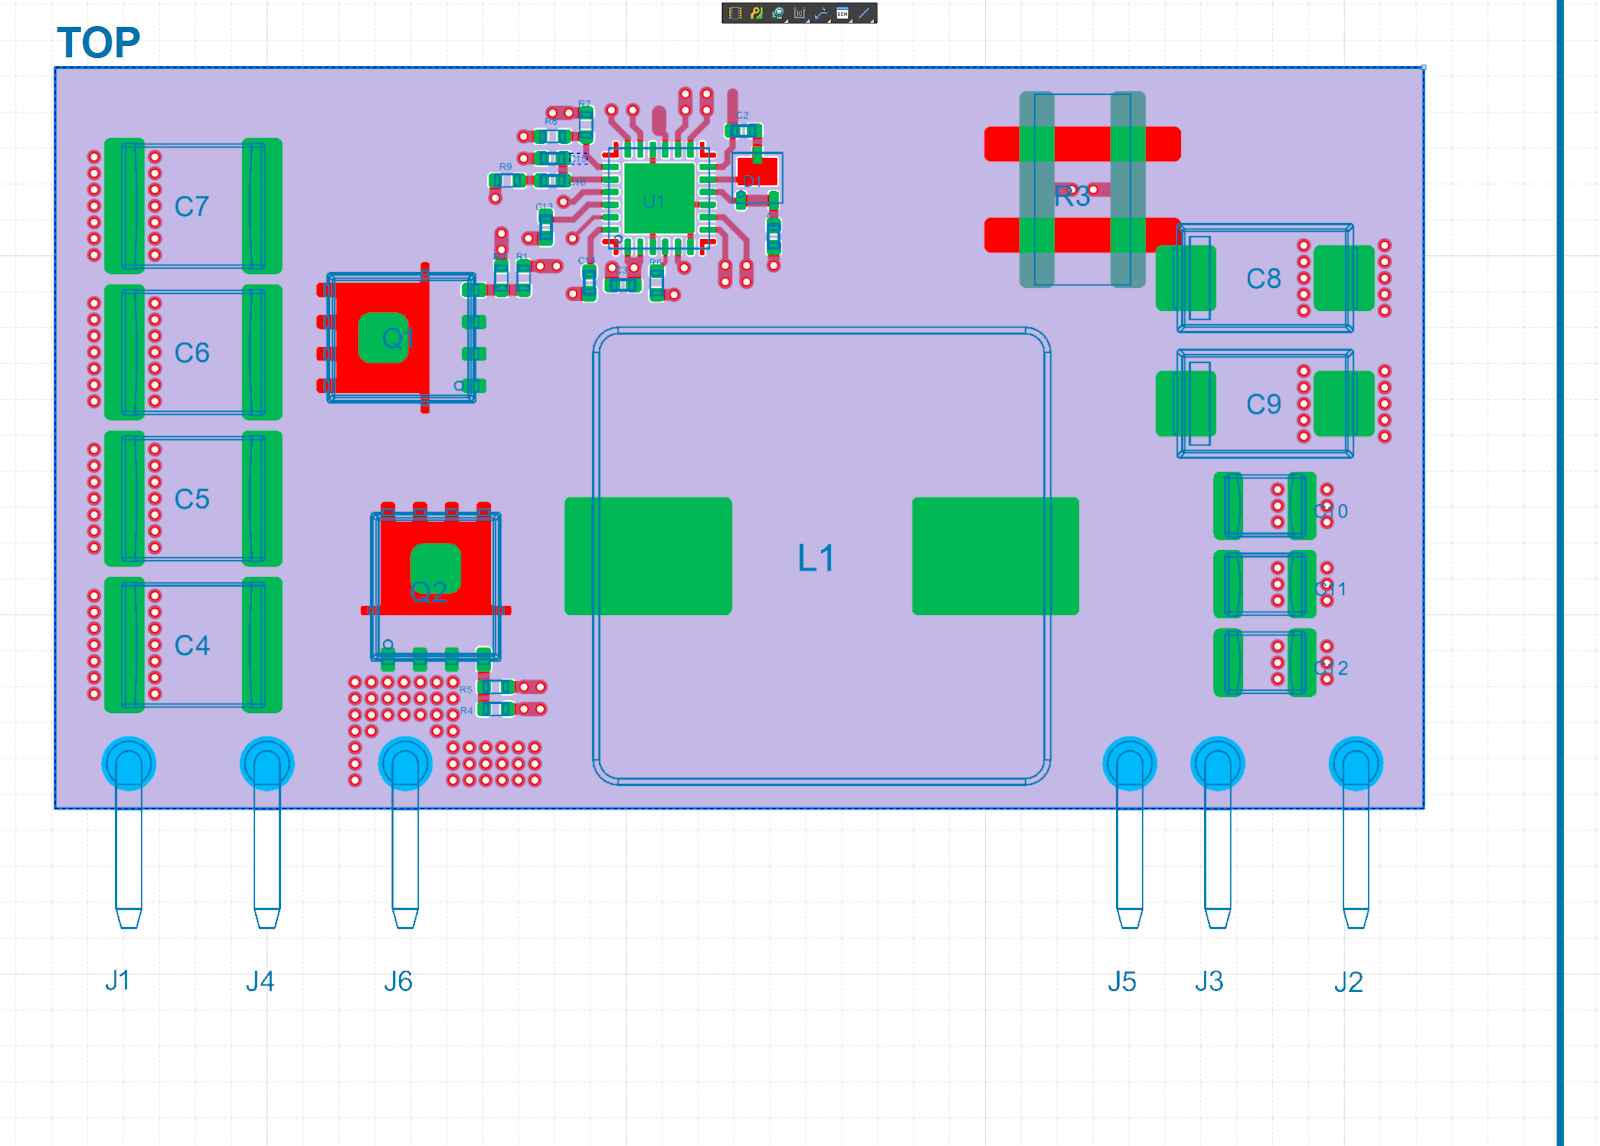 Board Assembly View Showing Mask, Topology, Through-holes, and Pads